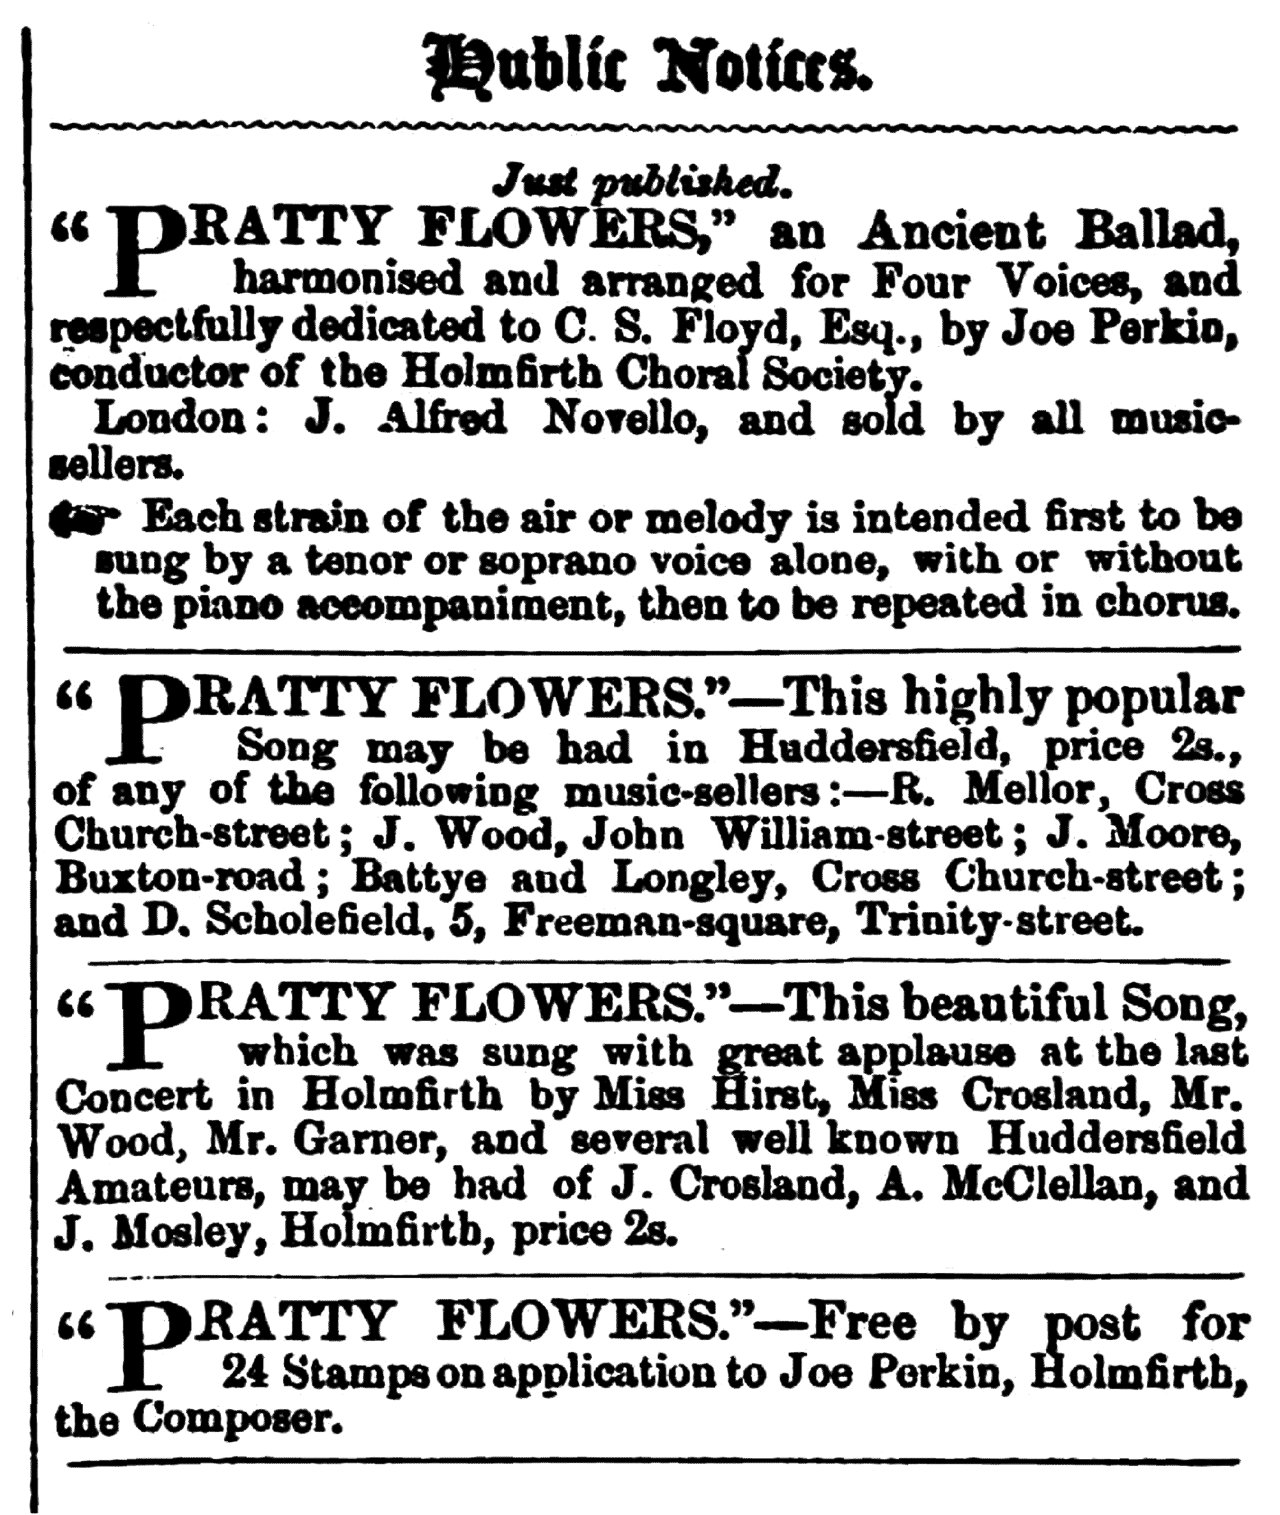 Huddersfield Chronicle 02 January 1858 - Public Notices, Pratty Flowers.png